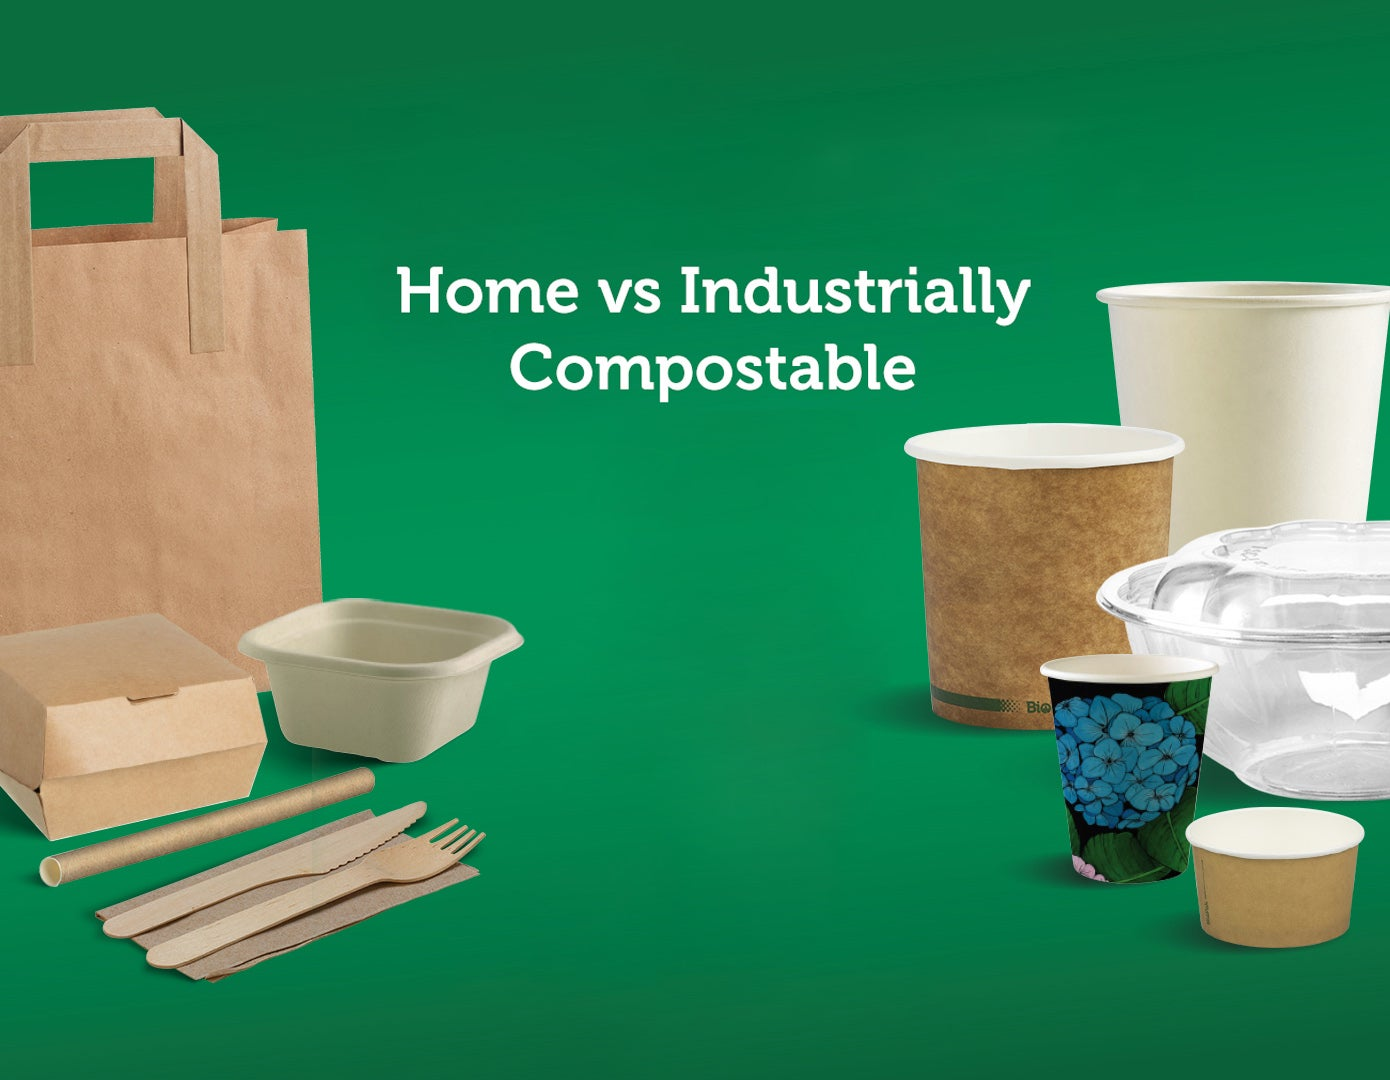 Commercial Composting vs. Home Composting packaging products